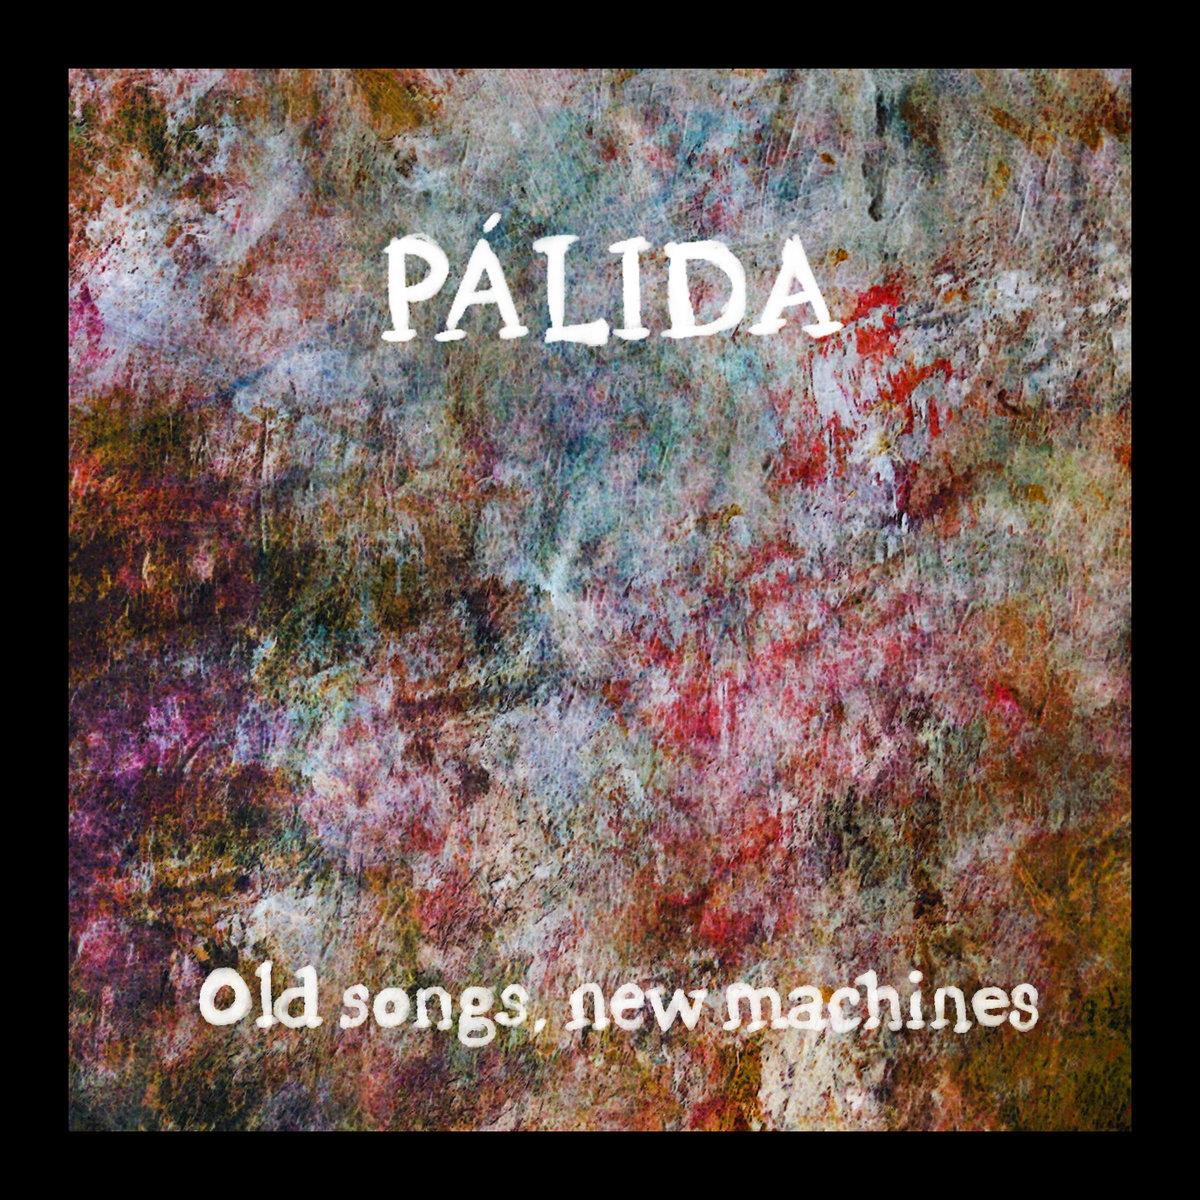 Old songs, new machines